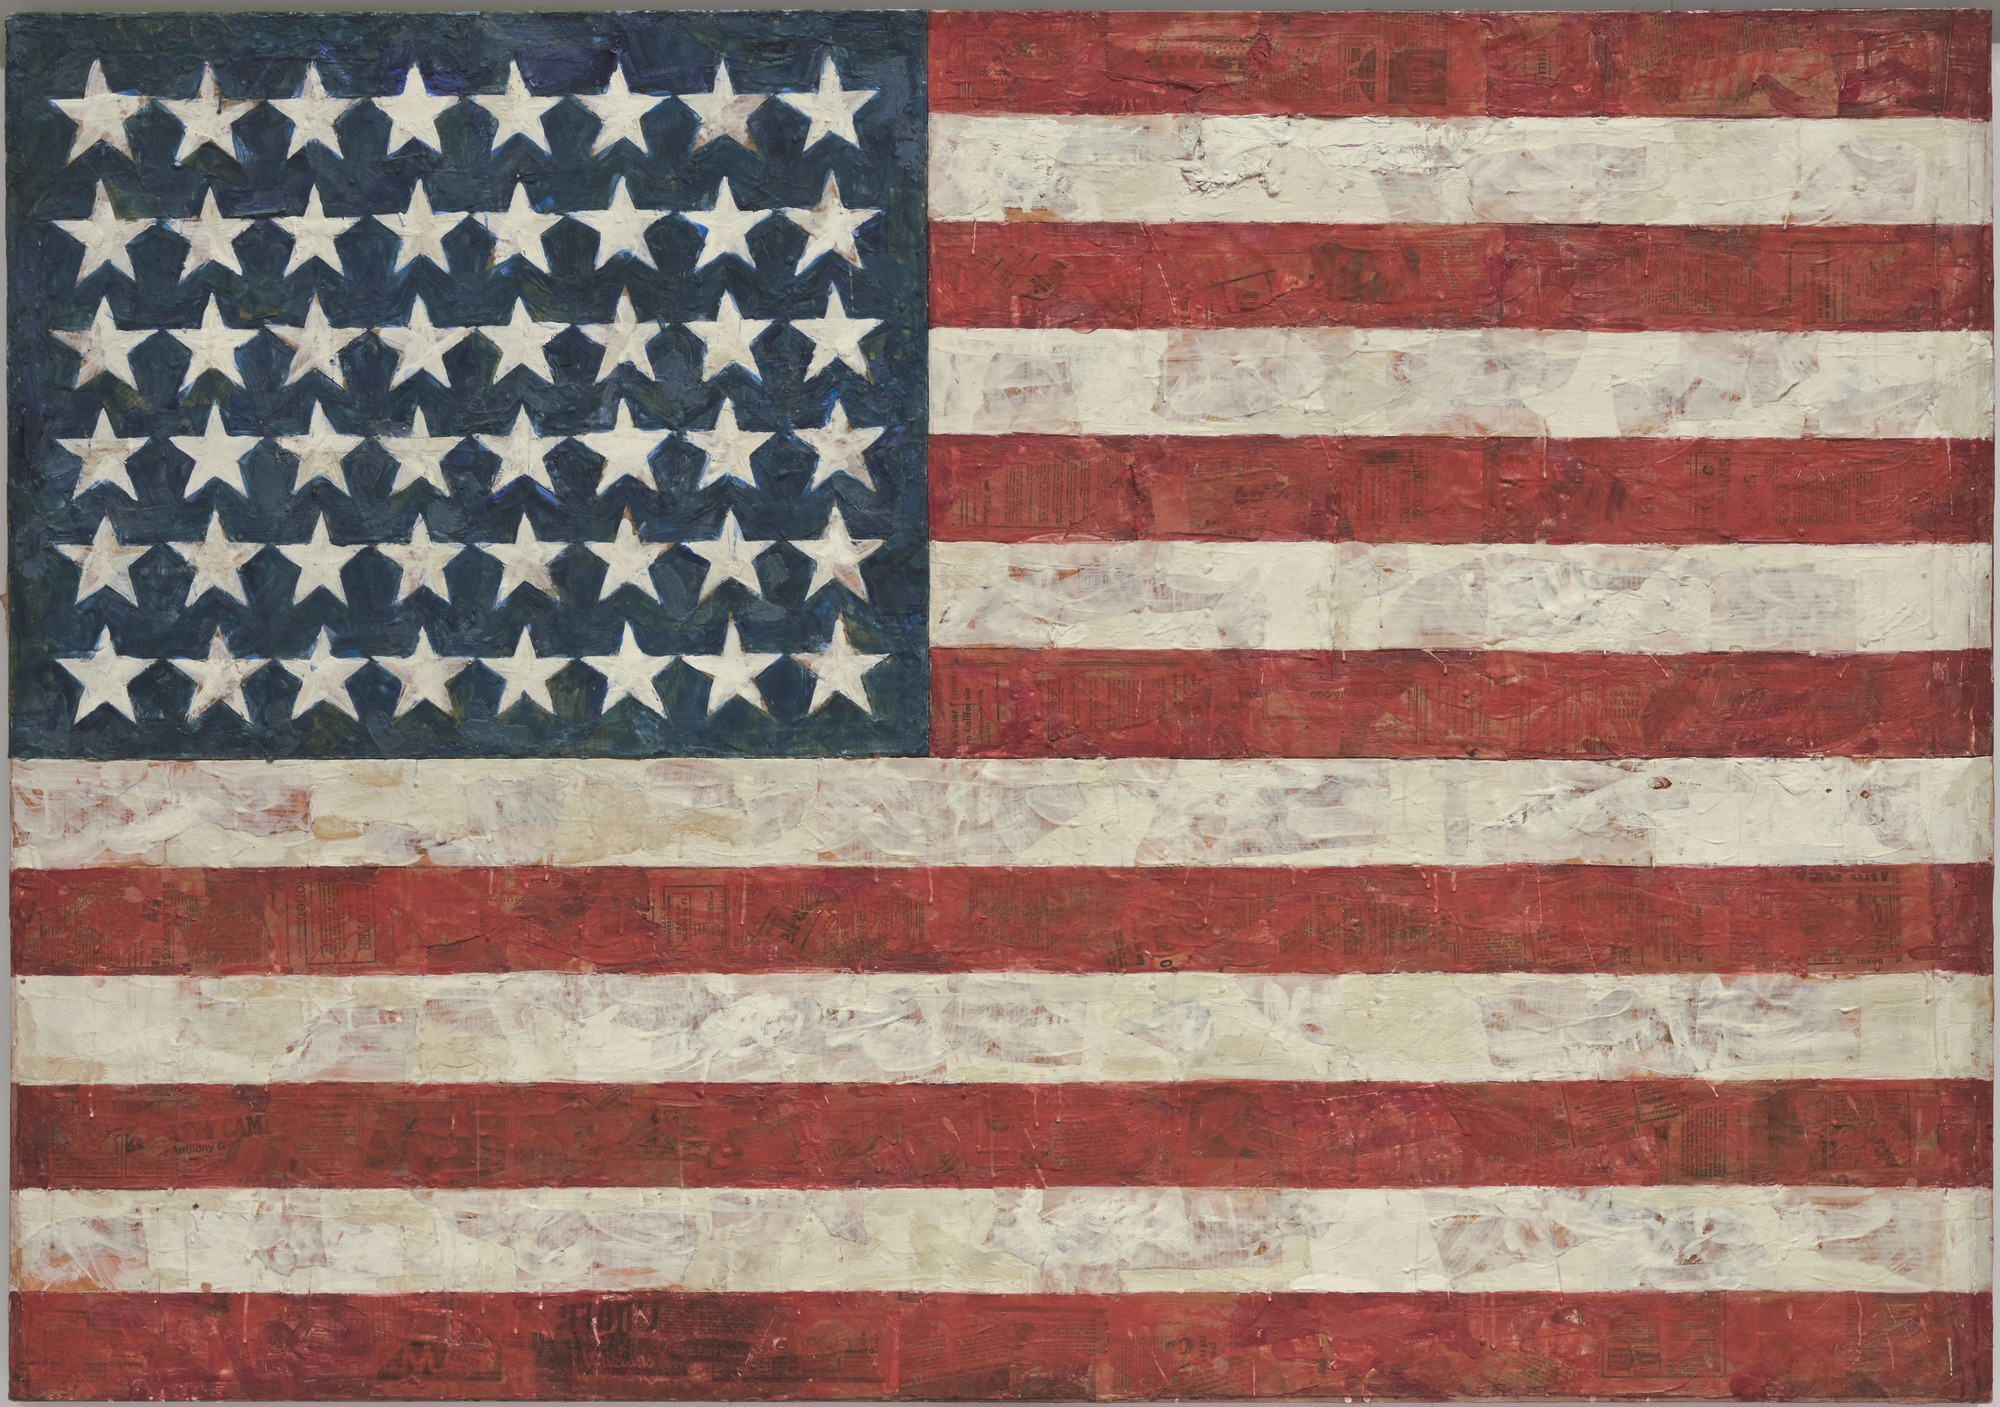 "<p>Johns, Jasper. Flag, 1955. Encaustic, oil, and collage on fabric mounted on plywood, 107.3 cm x 153.8 cm. New York, Museum of Modern Art.</p> <p>"" /></p> </div> <div class="